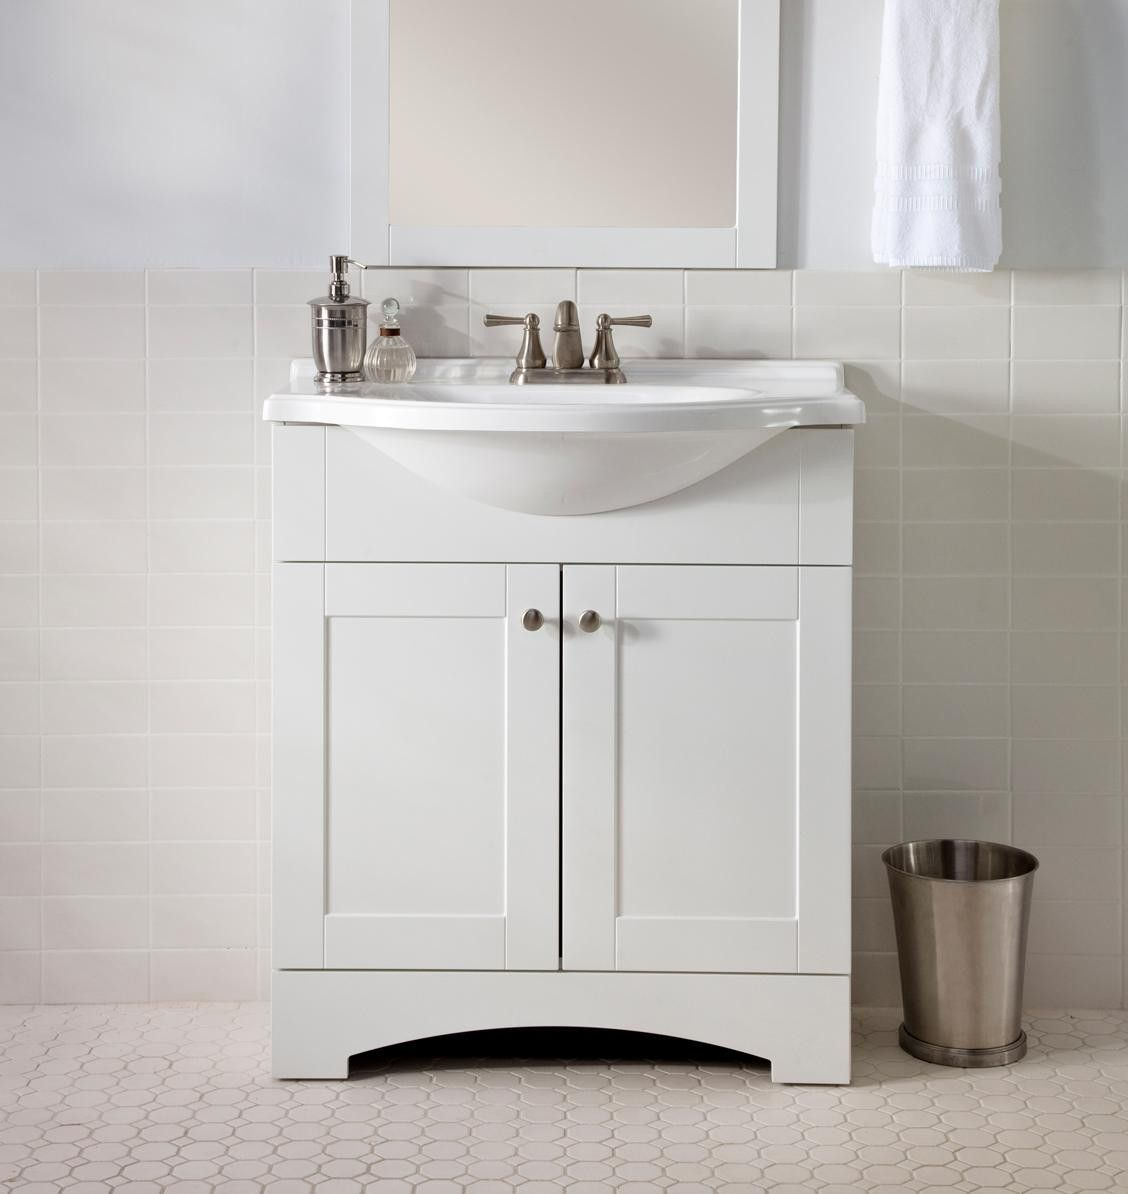 20+ Small Bathroom Cabinets White - Kitchen Cabinets Update Ideas On ...